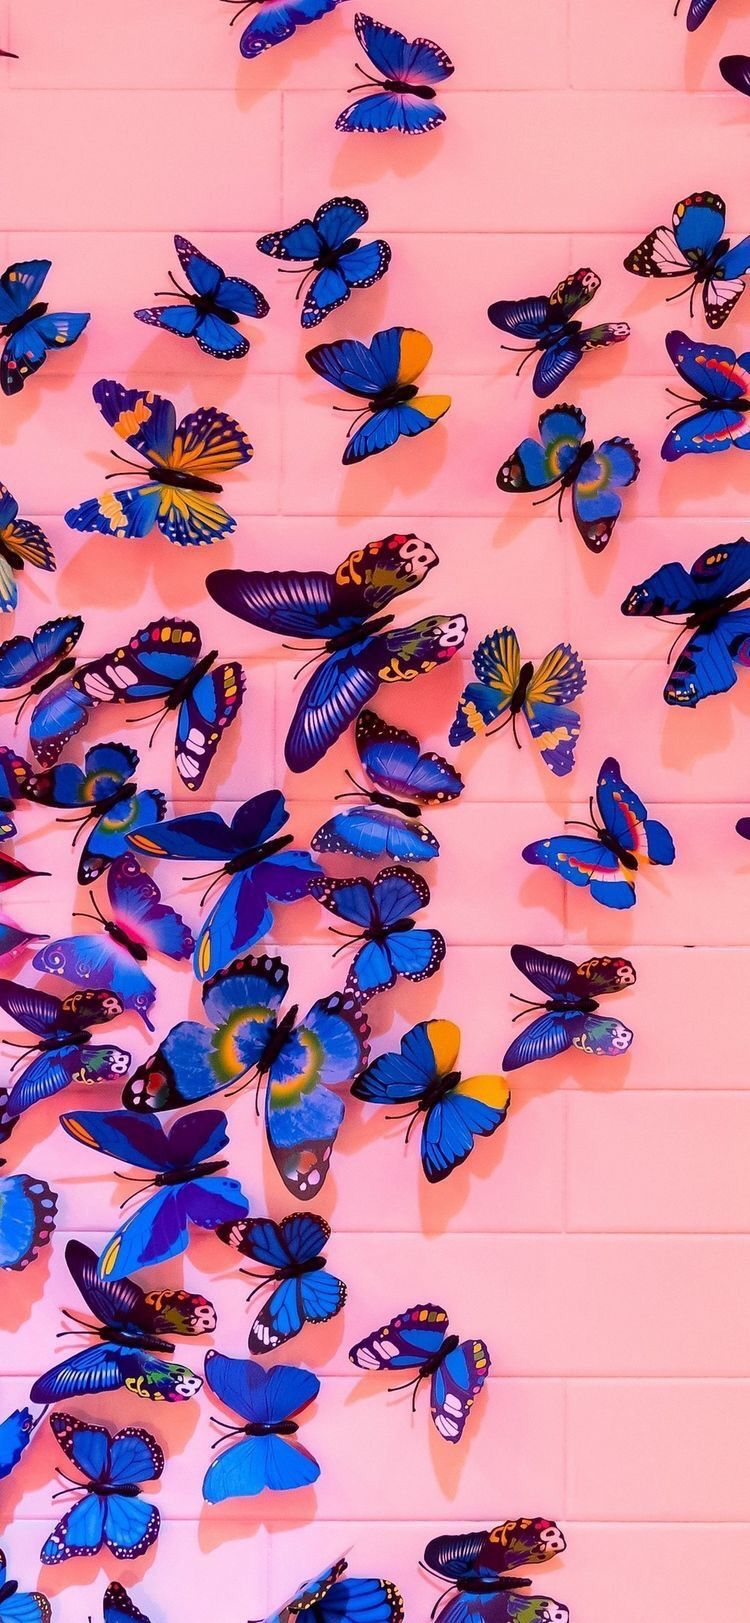 Pin By Abbie Payne On Aesthetically Pleasing In 2020 Butterfly Wallpaper Iphone Aesthetic Iphone Wallpaper Iphone Wallpaper